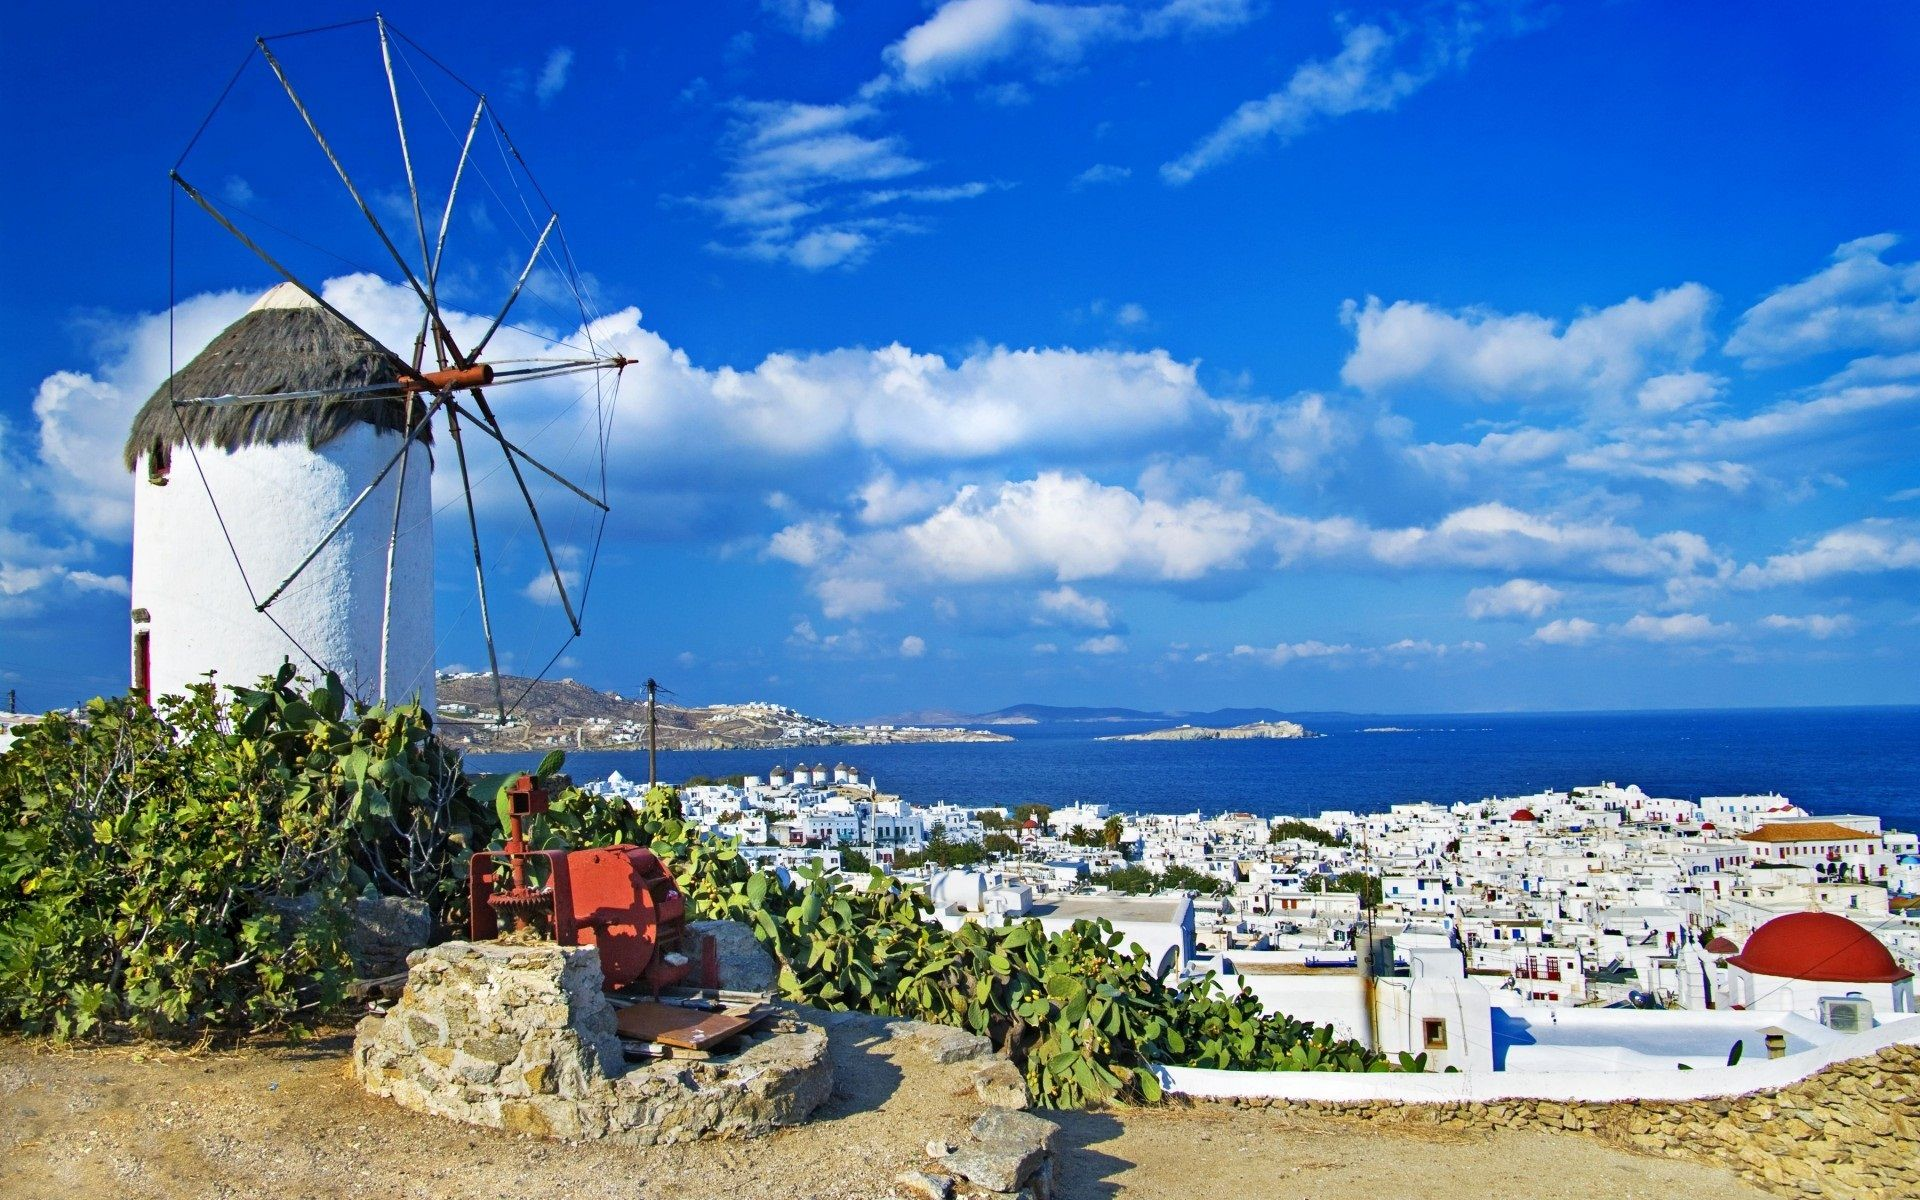 pictures of greek people